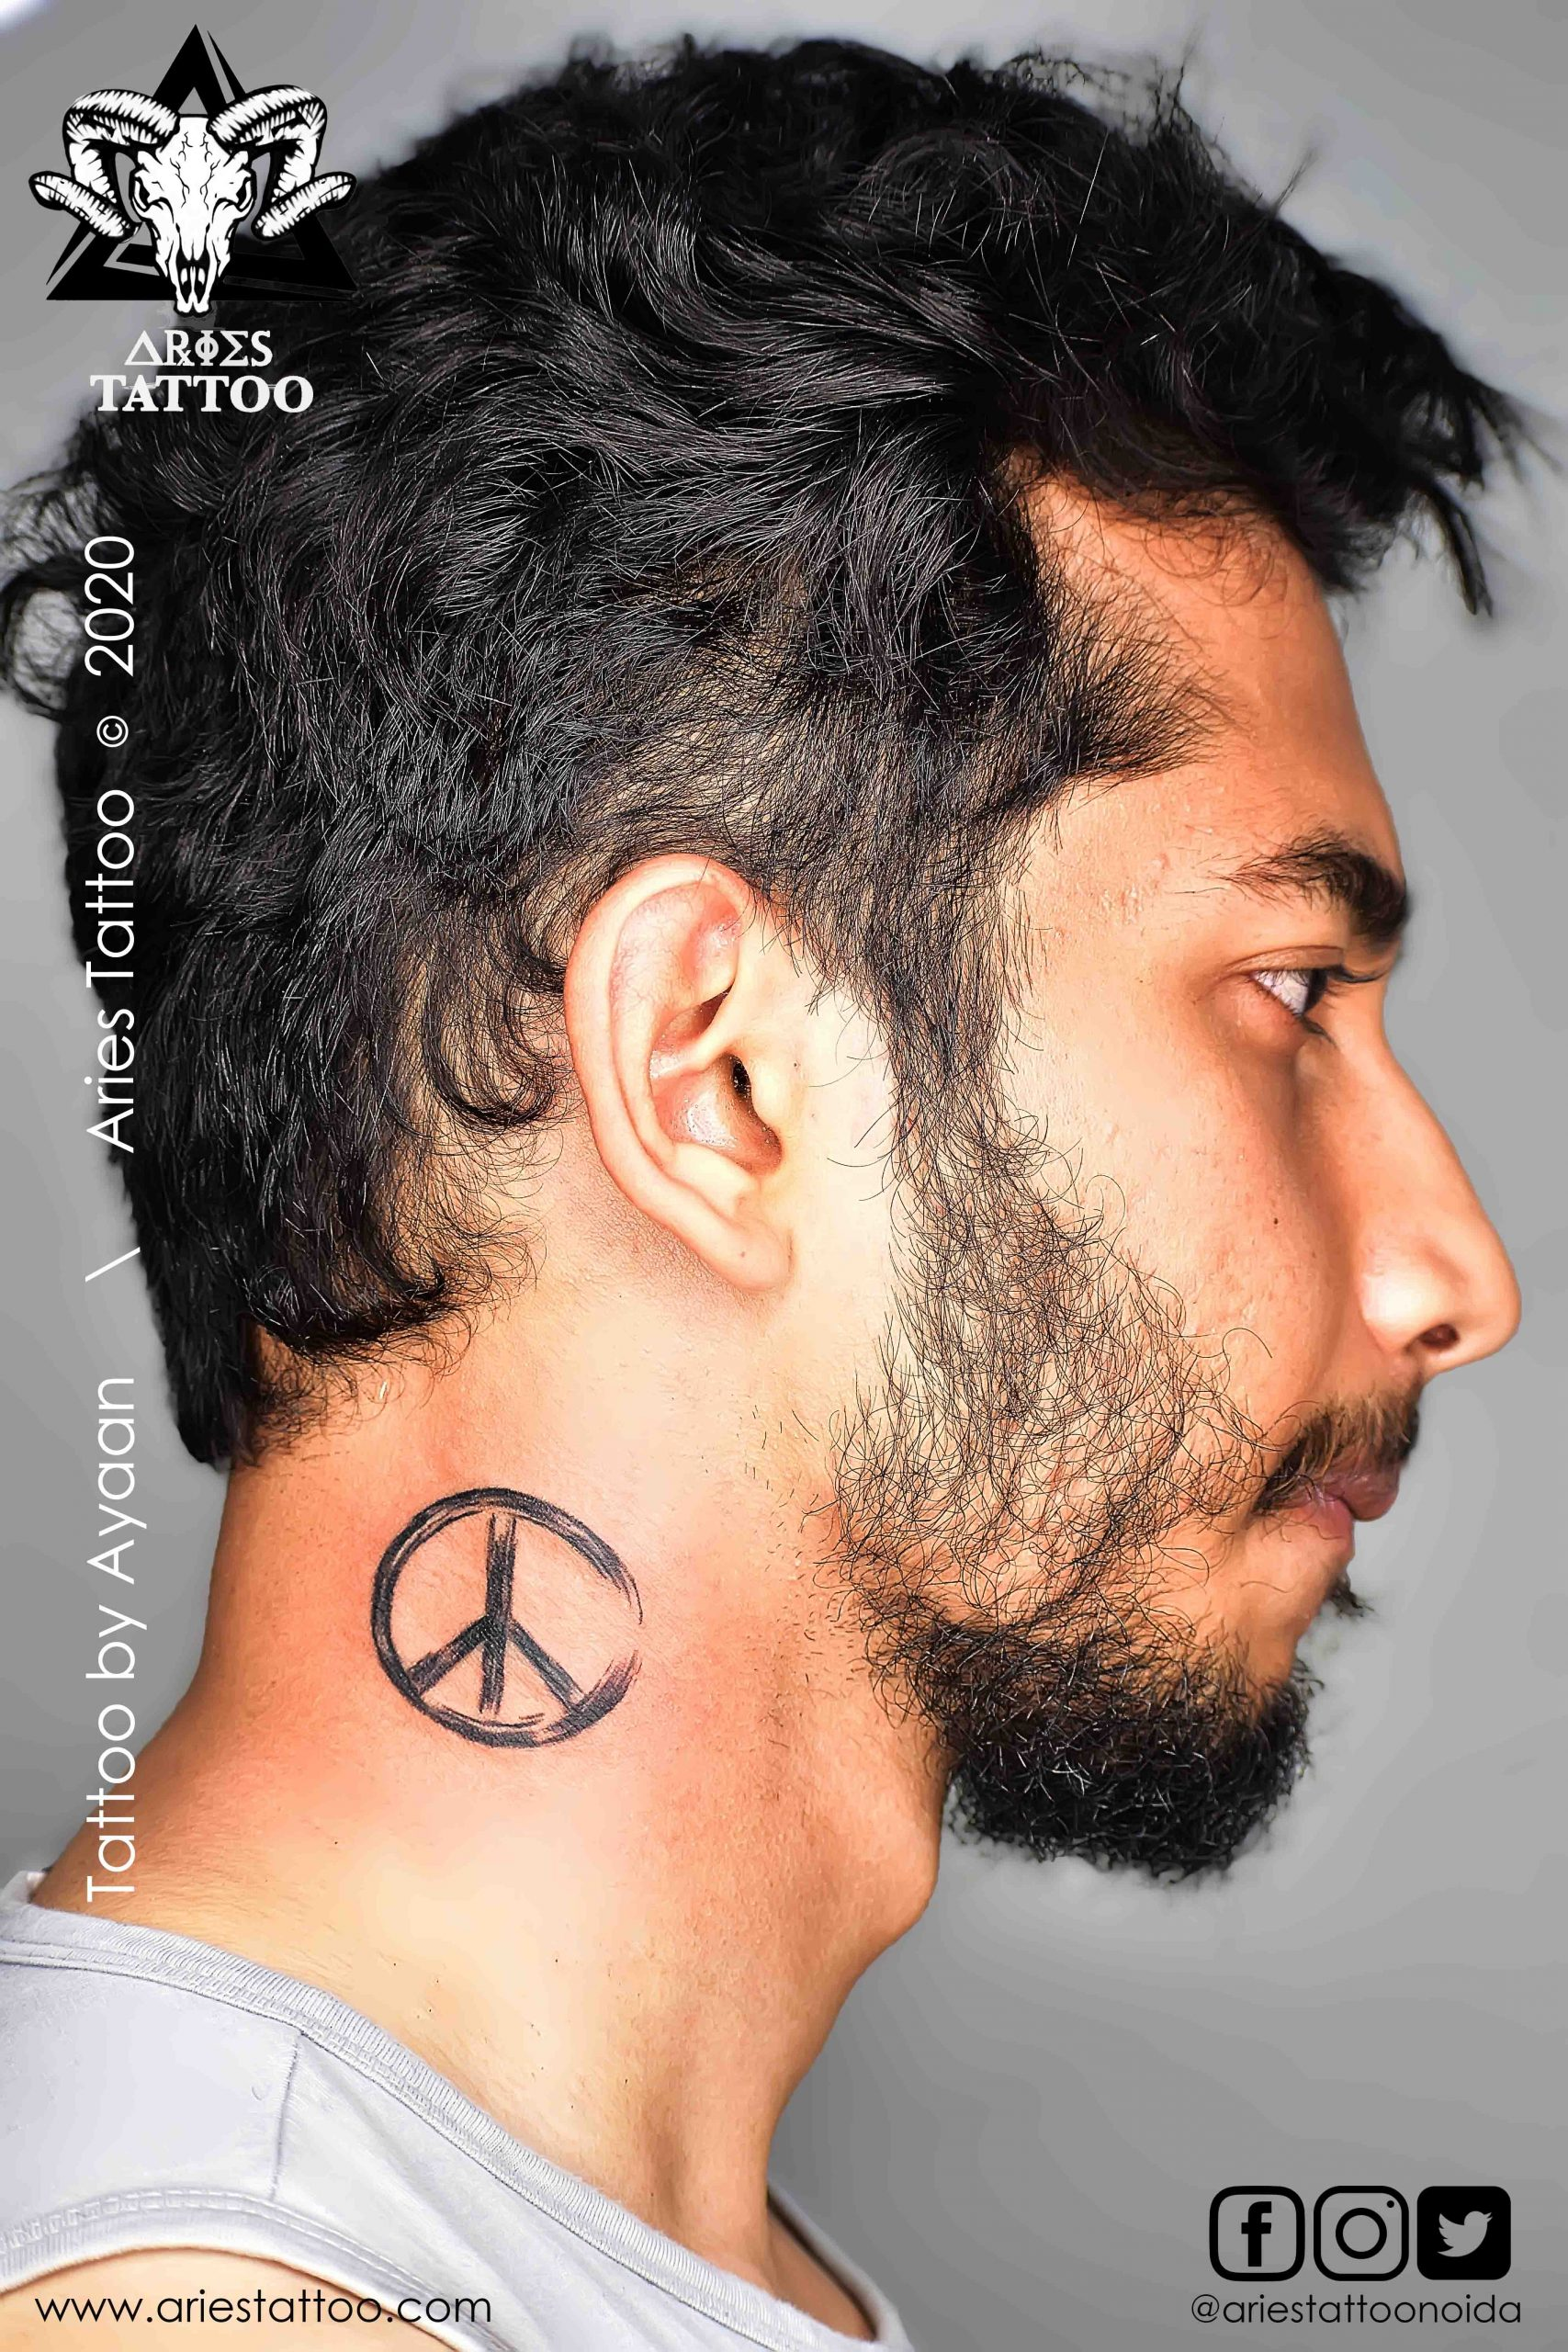 Peace Tattoo By ayaan | |Aries Tattoo Noida | Tattoo Shop and Studio In Noida